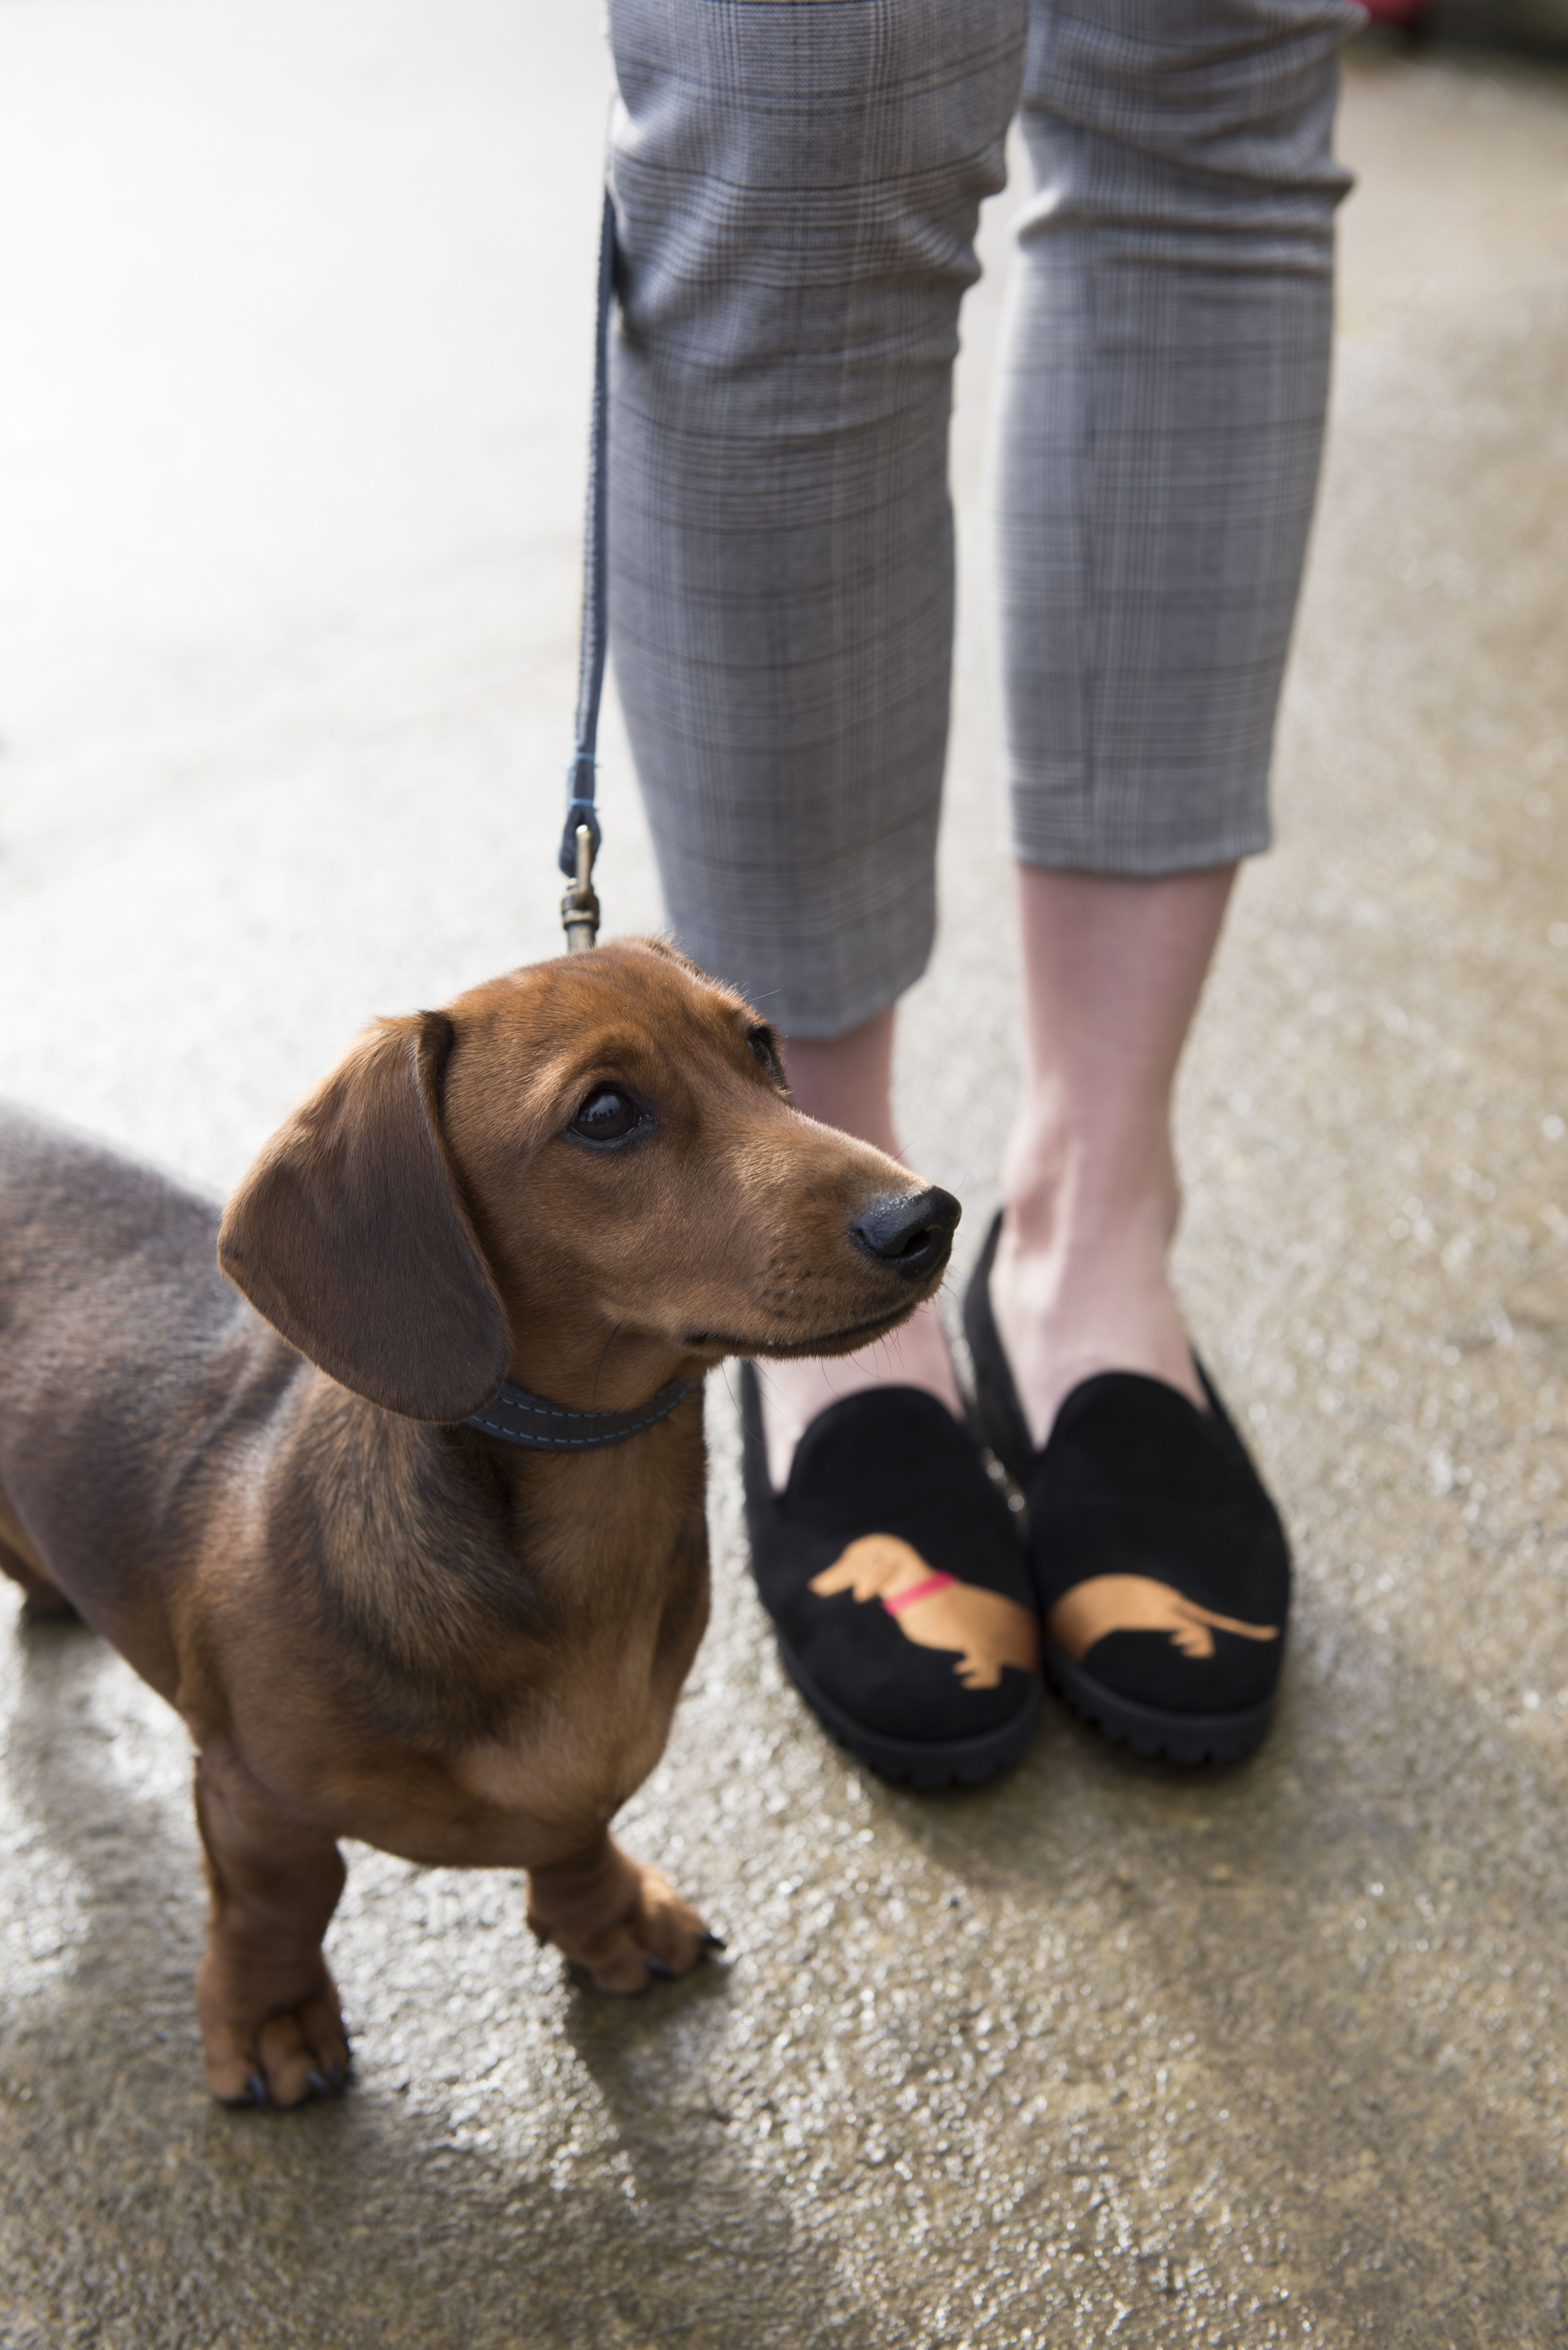 Carl Scarpa Black Slip On Daschund Loafers When You Love Dogs This